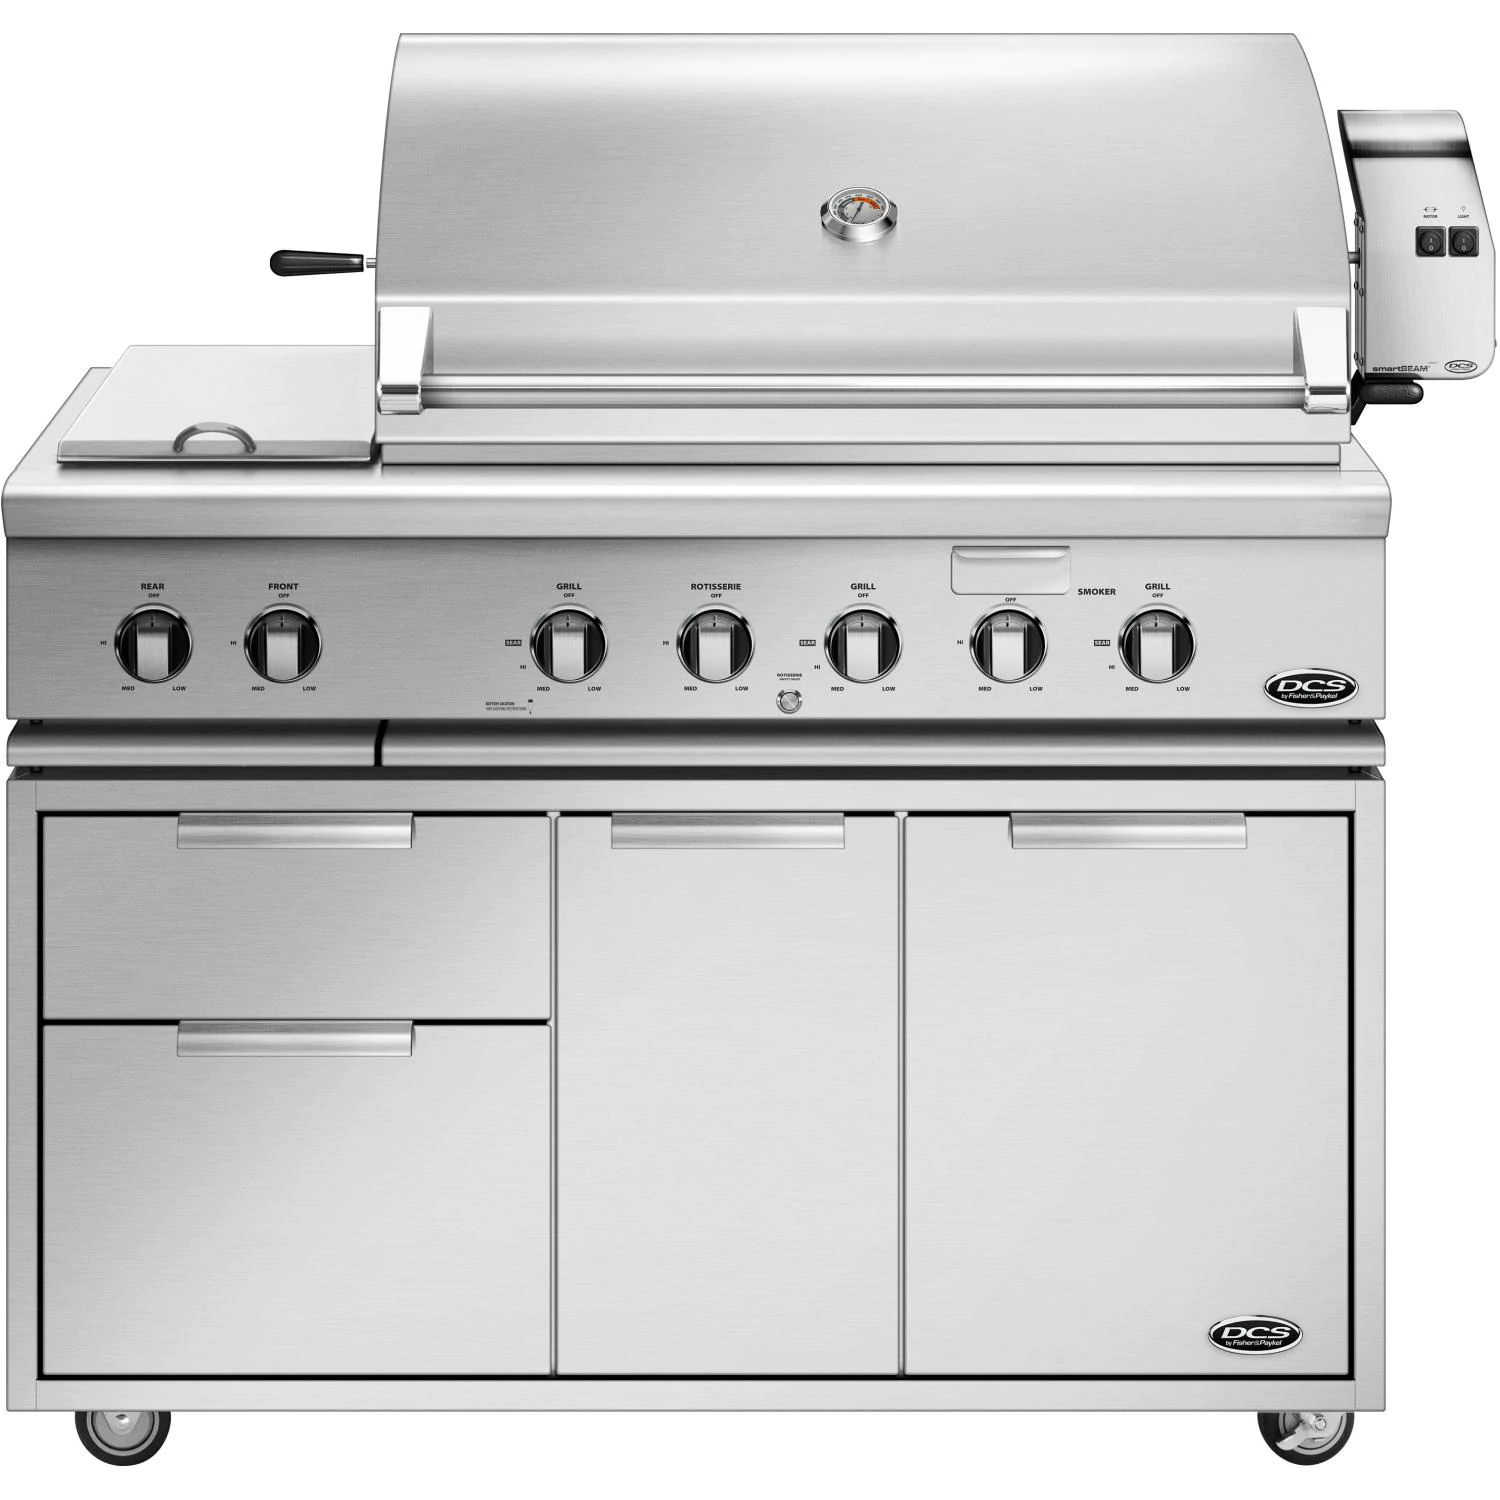 DCS Series 7 Traditional 48-Inch Propane Gas Grill With Double Side Burner & Rotisserie On DCS CAD Cart - bh1-48rs-l+cad1-48